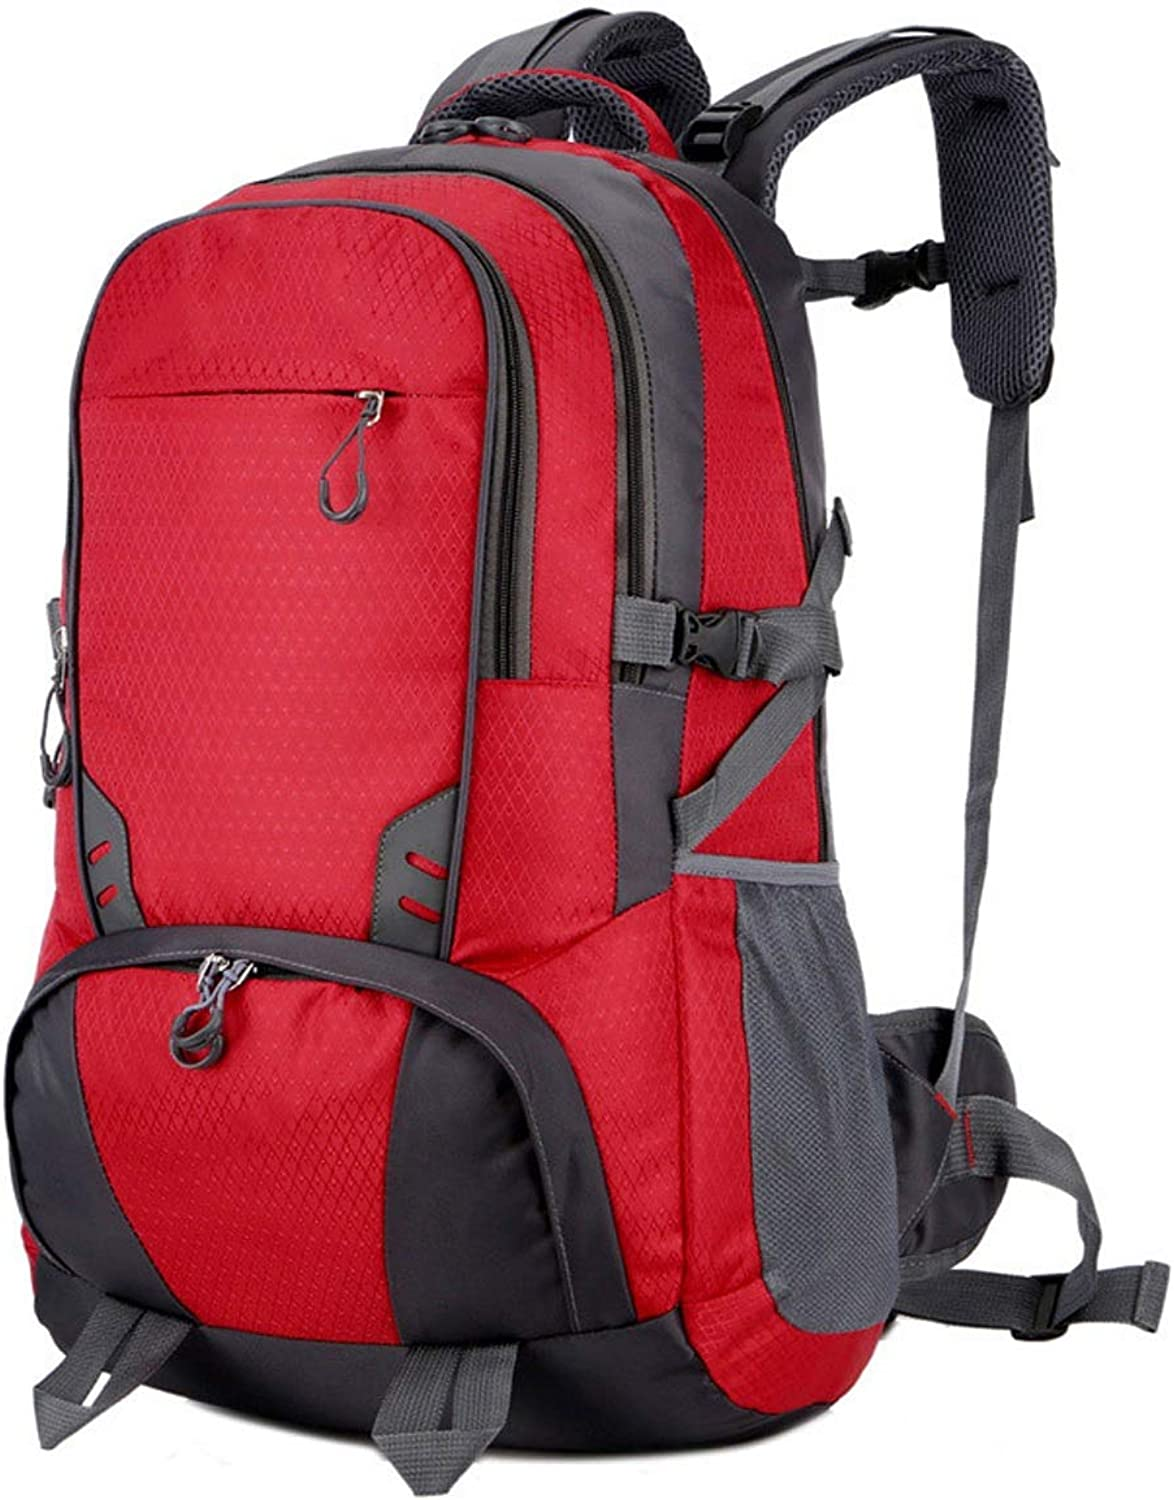 RMXMY Fashion Casual Nylon Lightweight Backpack Travel Backpack Large Capacity Personality Creative Simple Hiking Waterproof ScratchResistant Practical Backpack (color   RED)